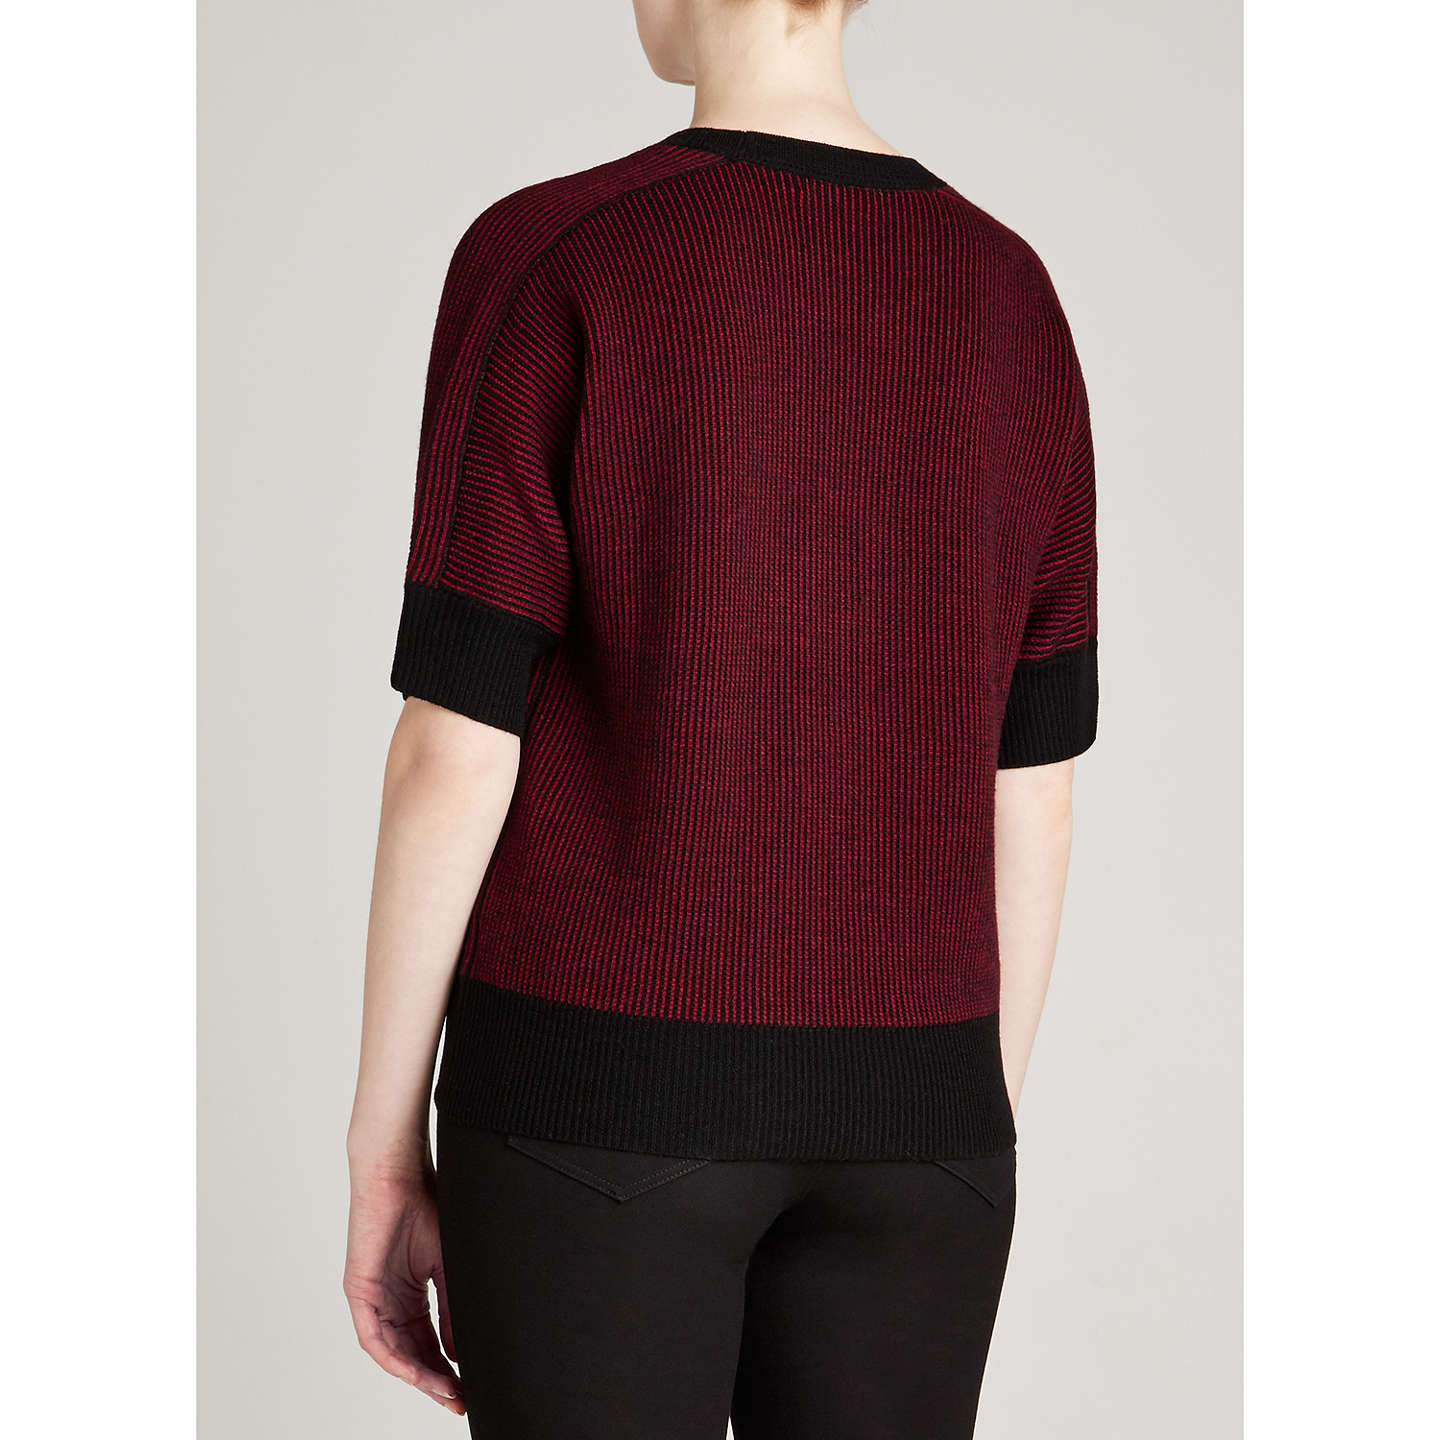 BuyWinser London Merino Wool Coco Top, Black/Burgundy, XS Online at johnlewis.com